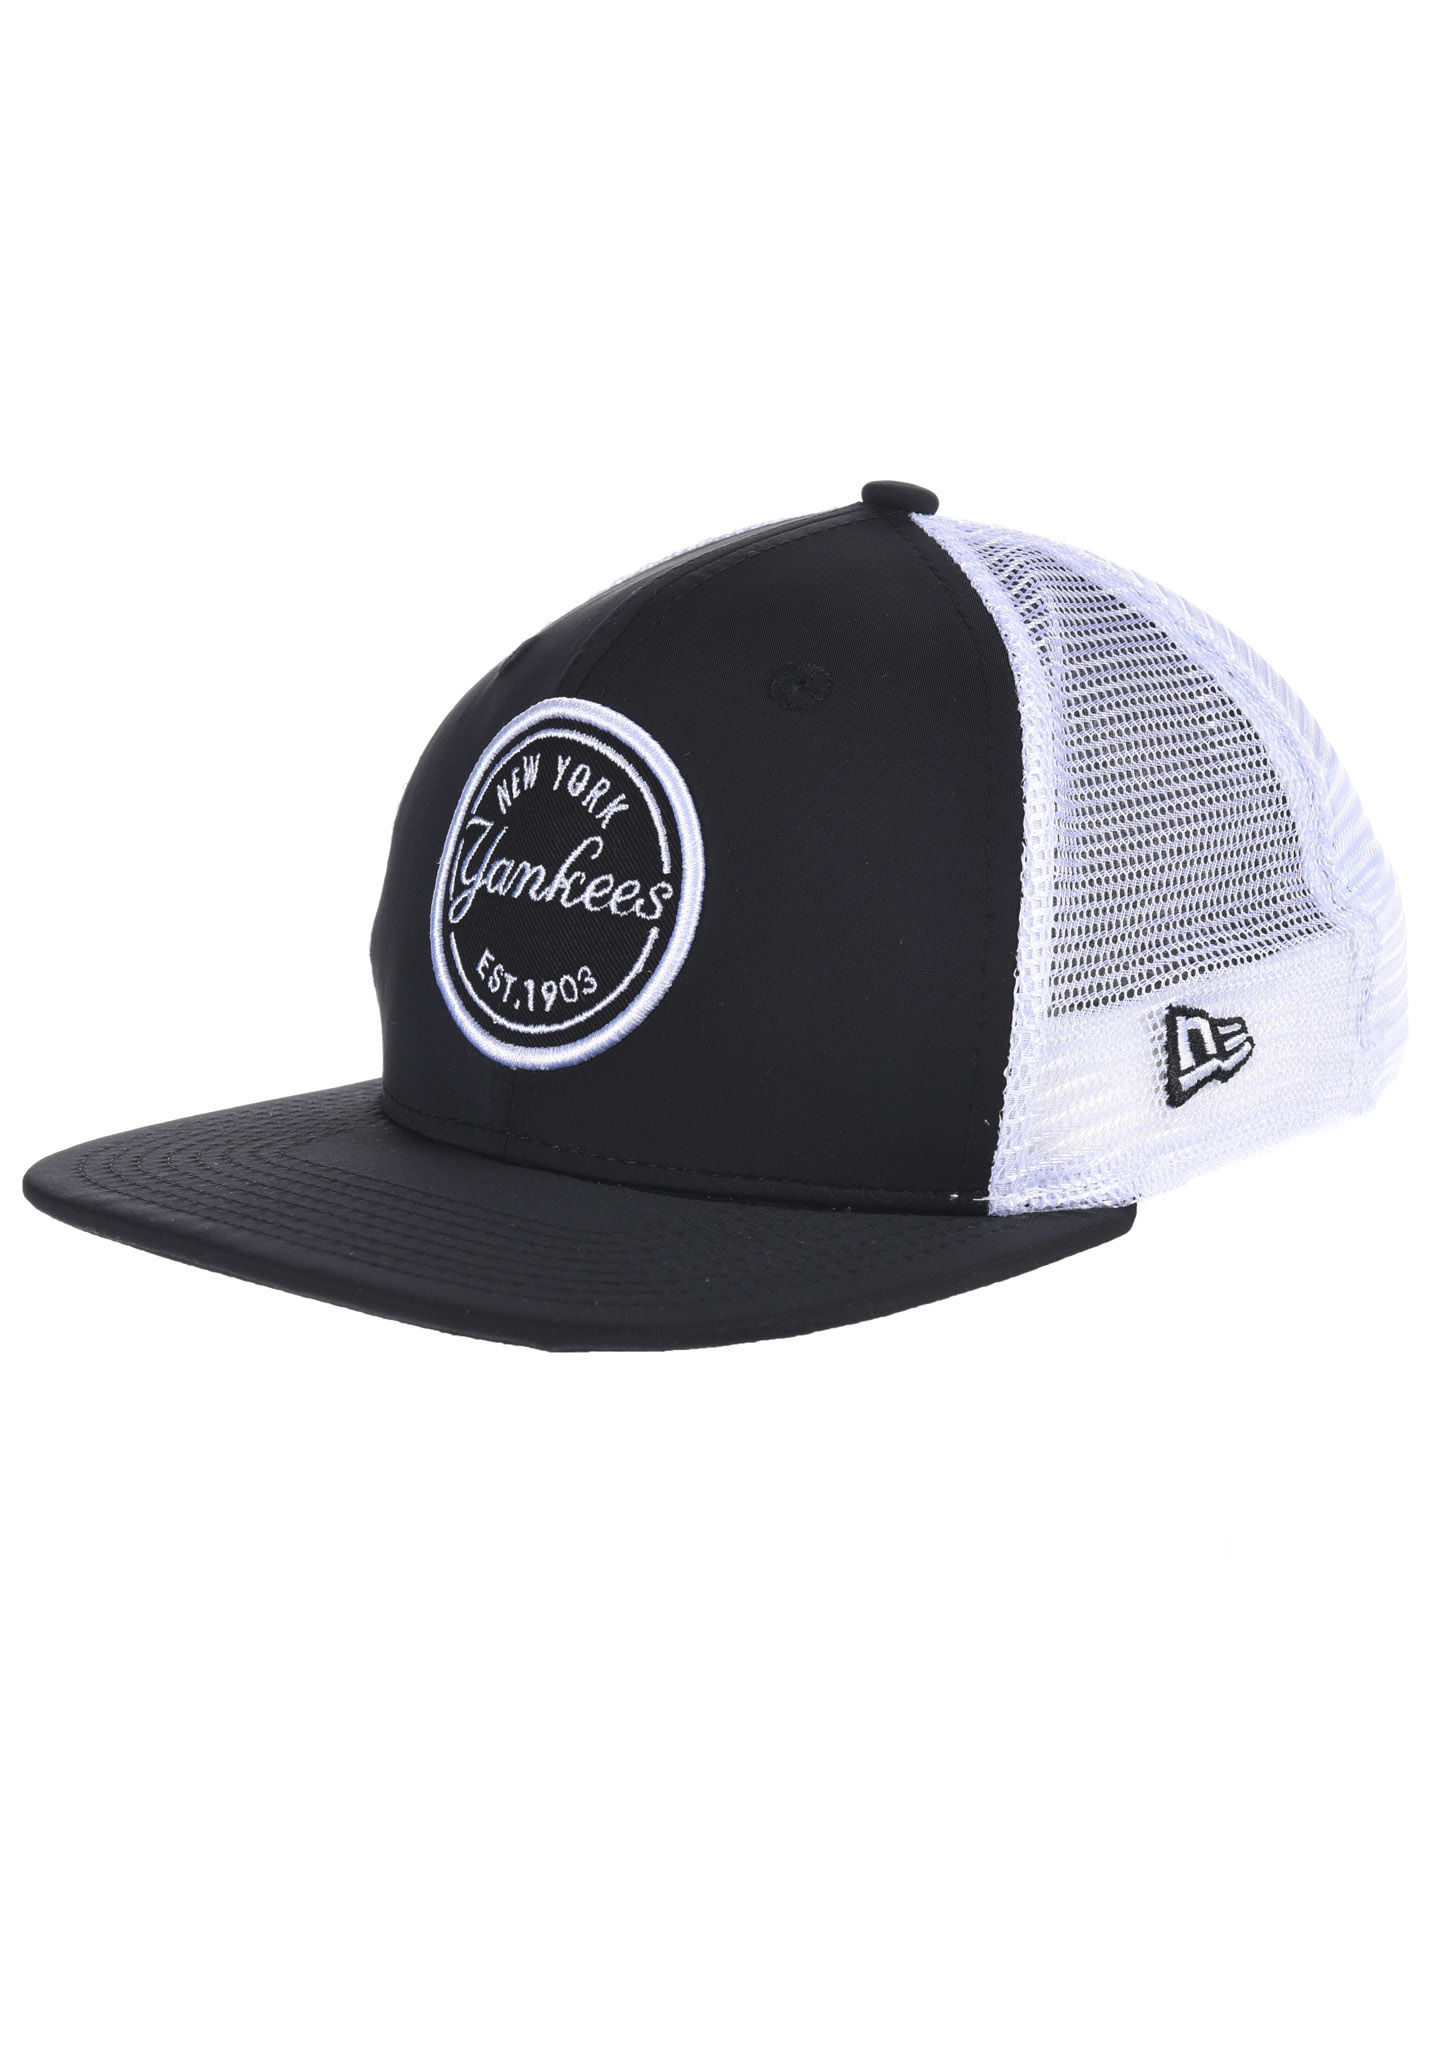 11610c9c33e NEW Era 9Fifty New York Yankees - Trucker Cap - Black - Planet Sports